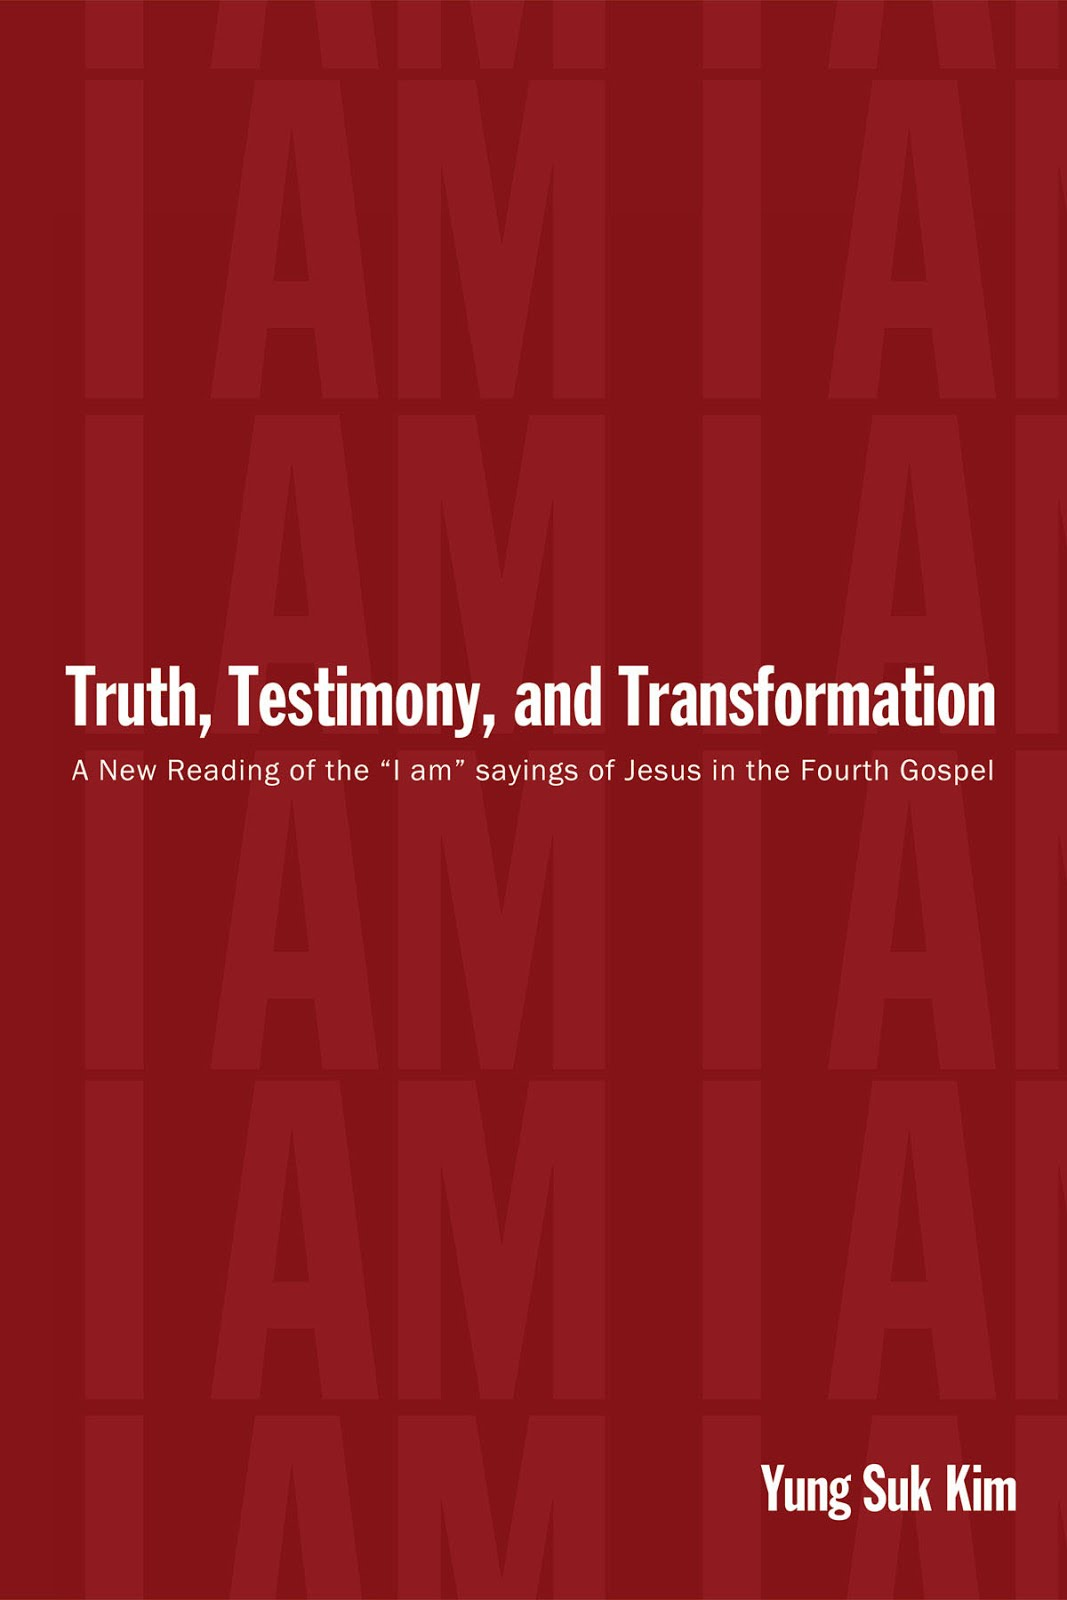 Truth, Testimony, Transformation